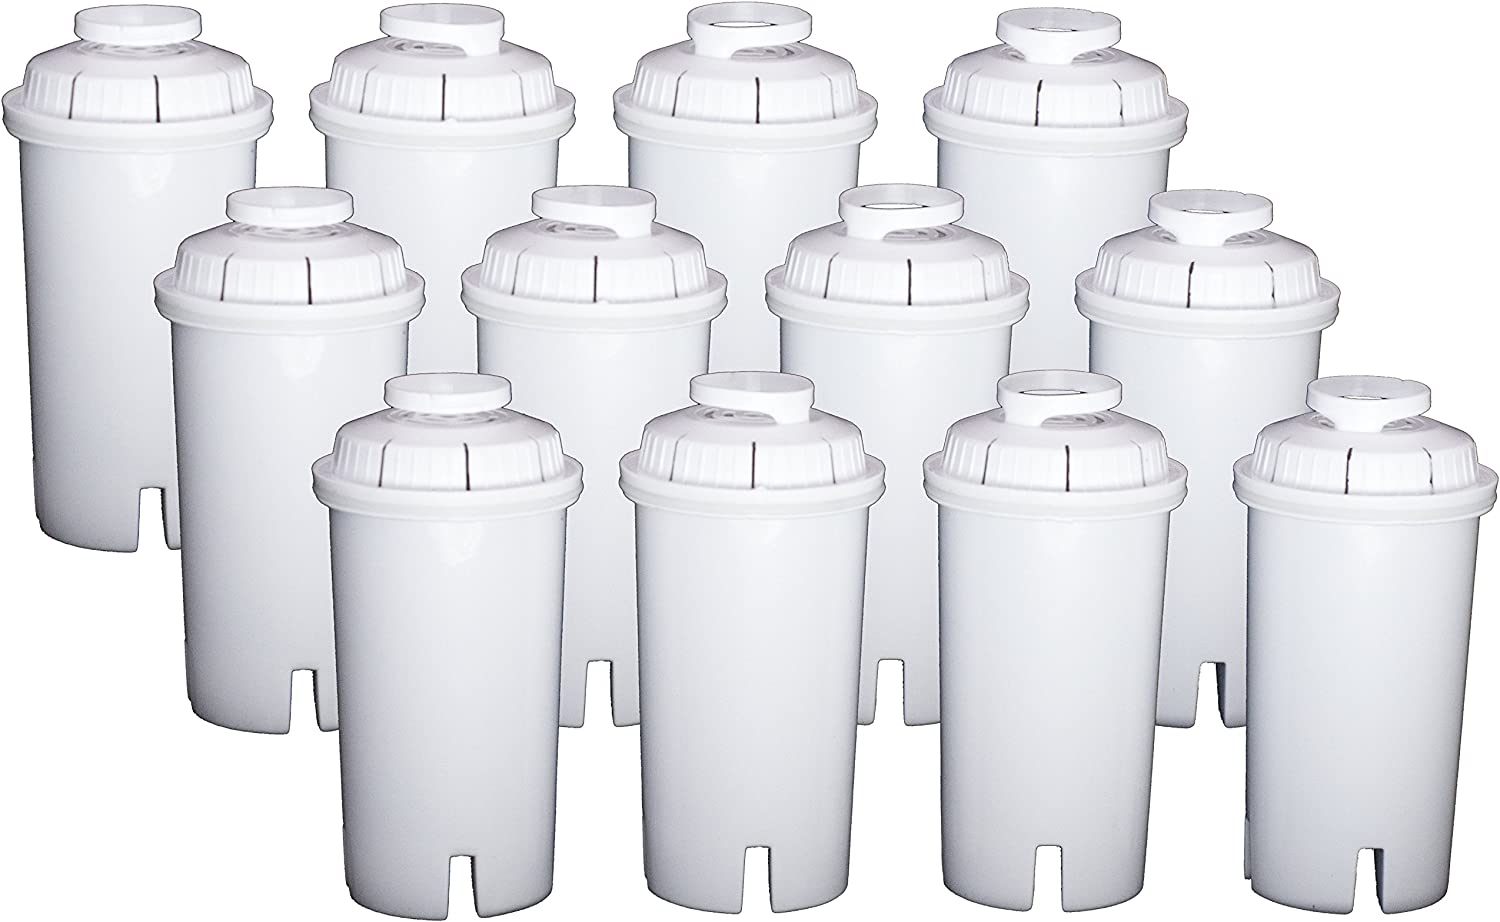 Sapphire Replacement Water Filters, for Sapphire, Brita and Pur Pitchers, 12-Pack